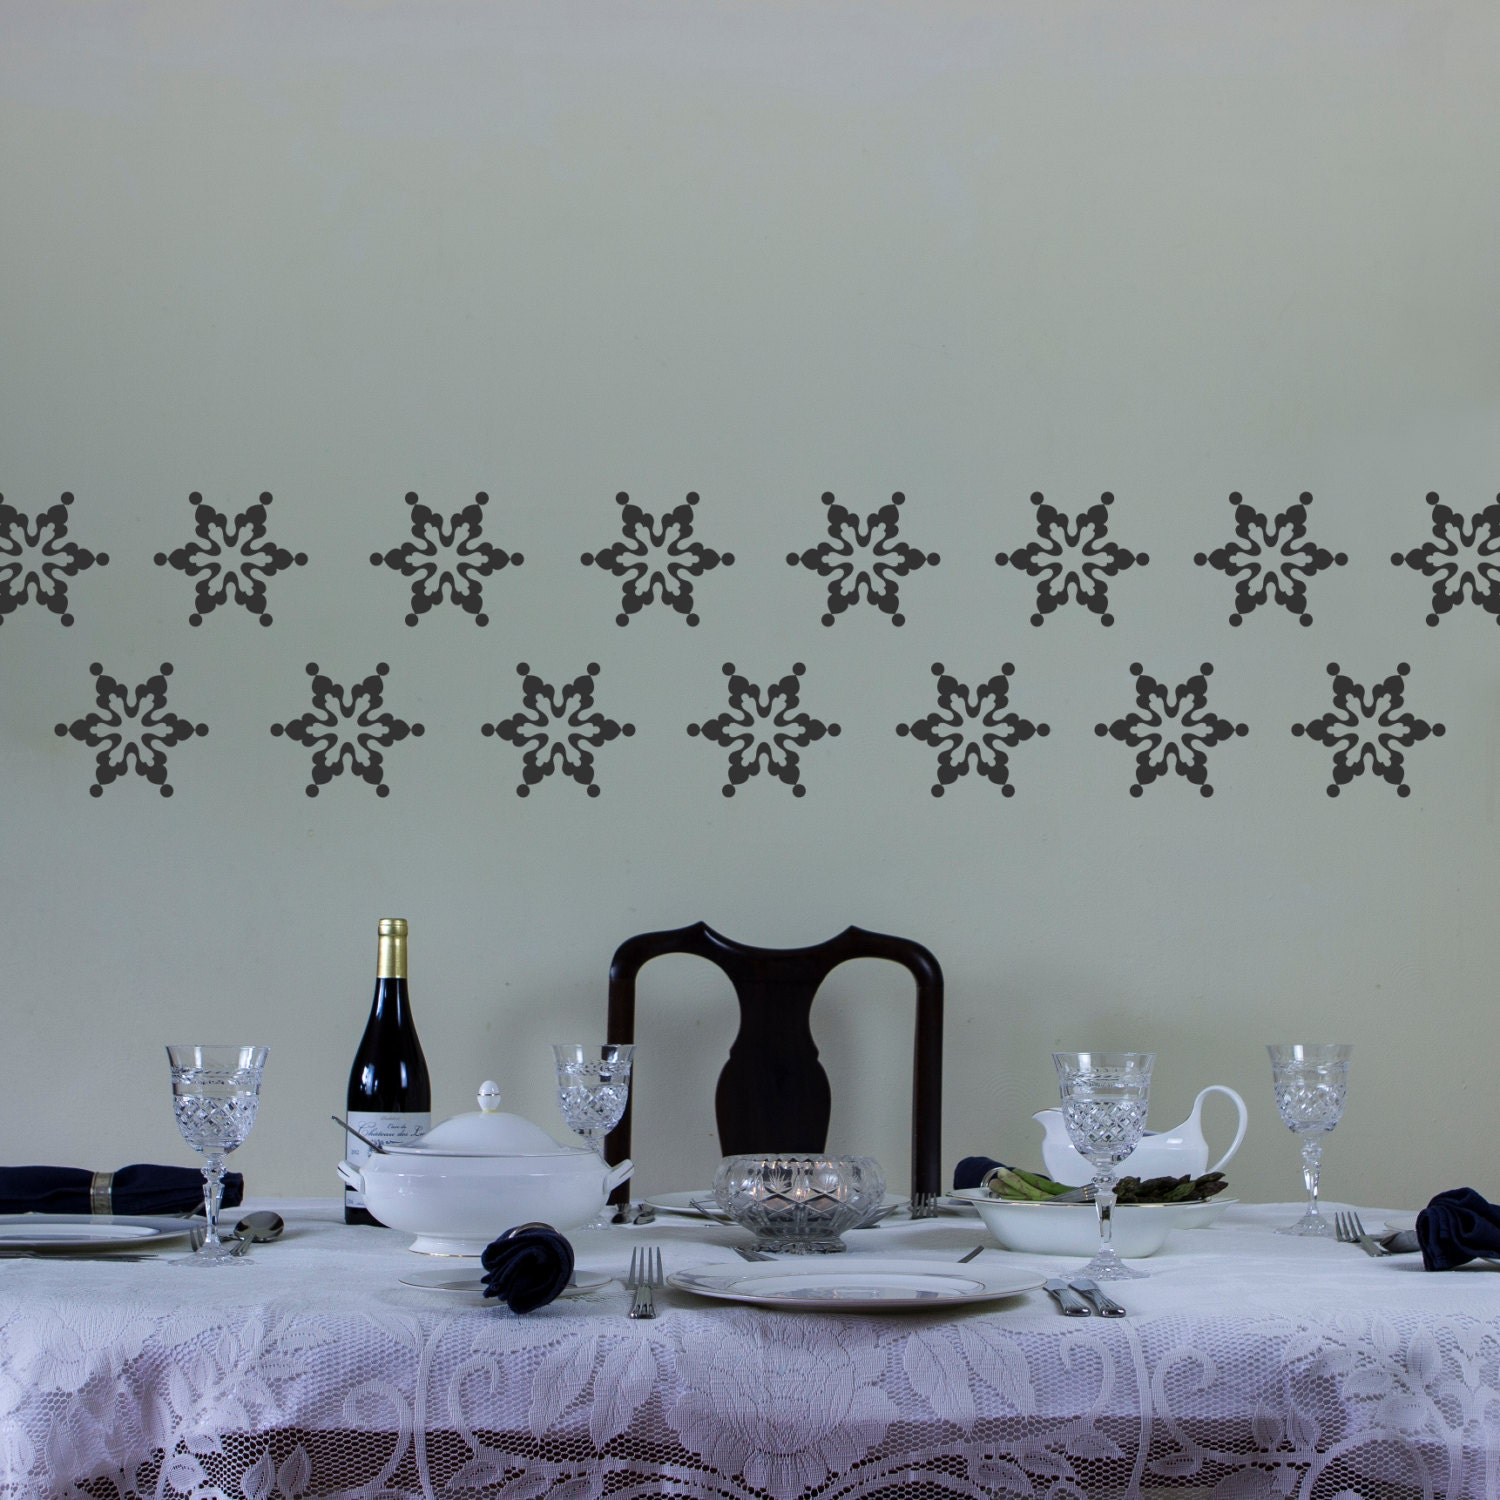 Snowflake Five Wall Art Decal Pack